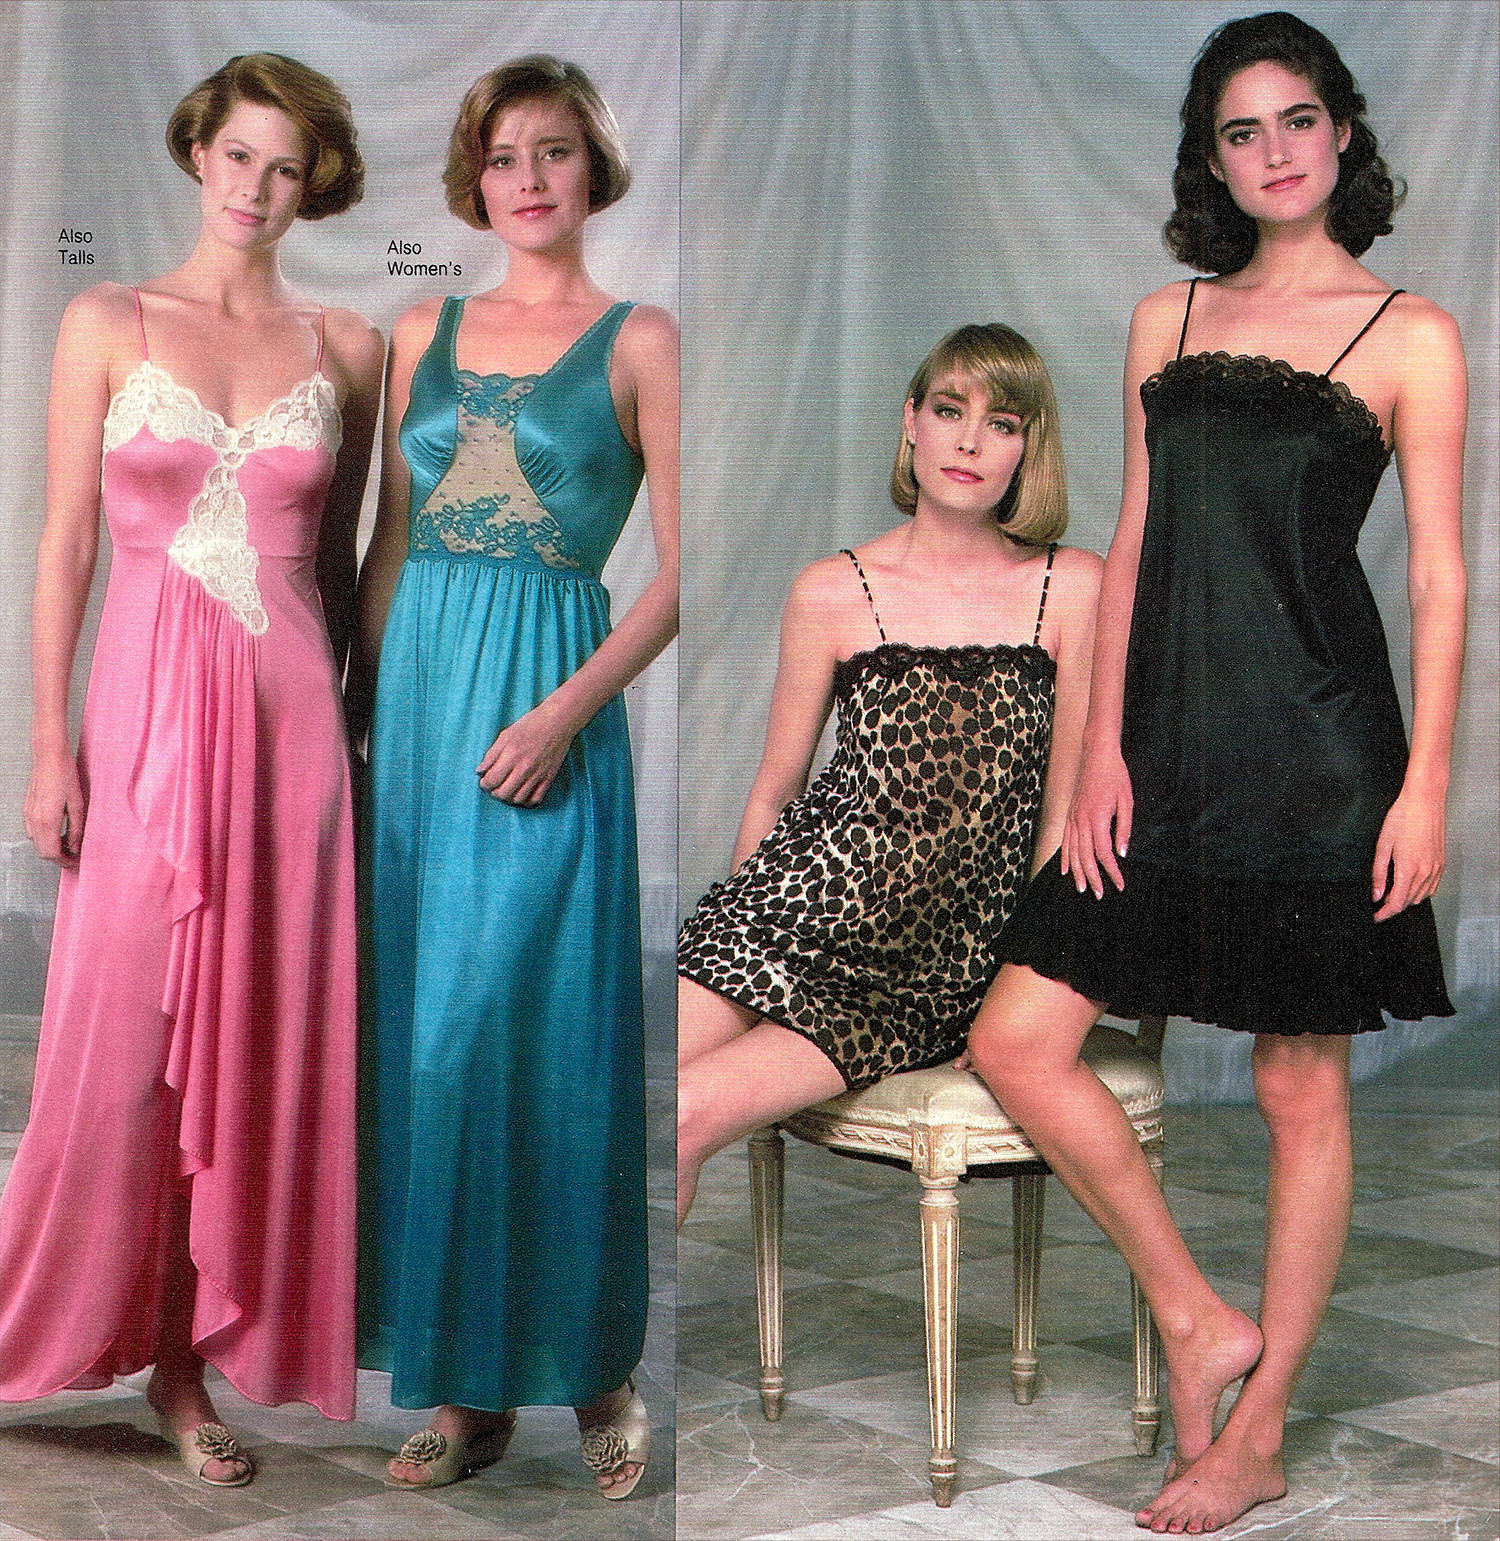 Frilly Nightgowns to Garfield Pajamas: 1980s Women's